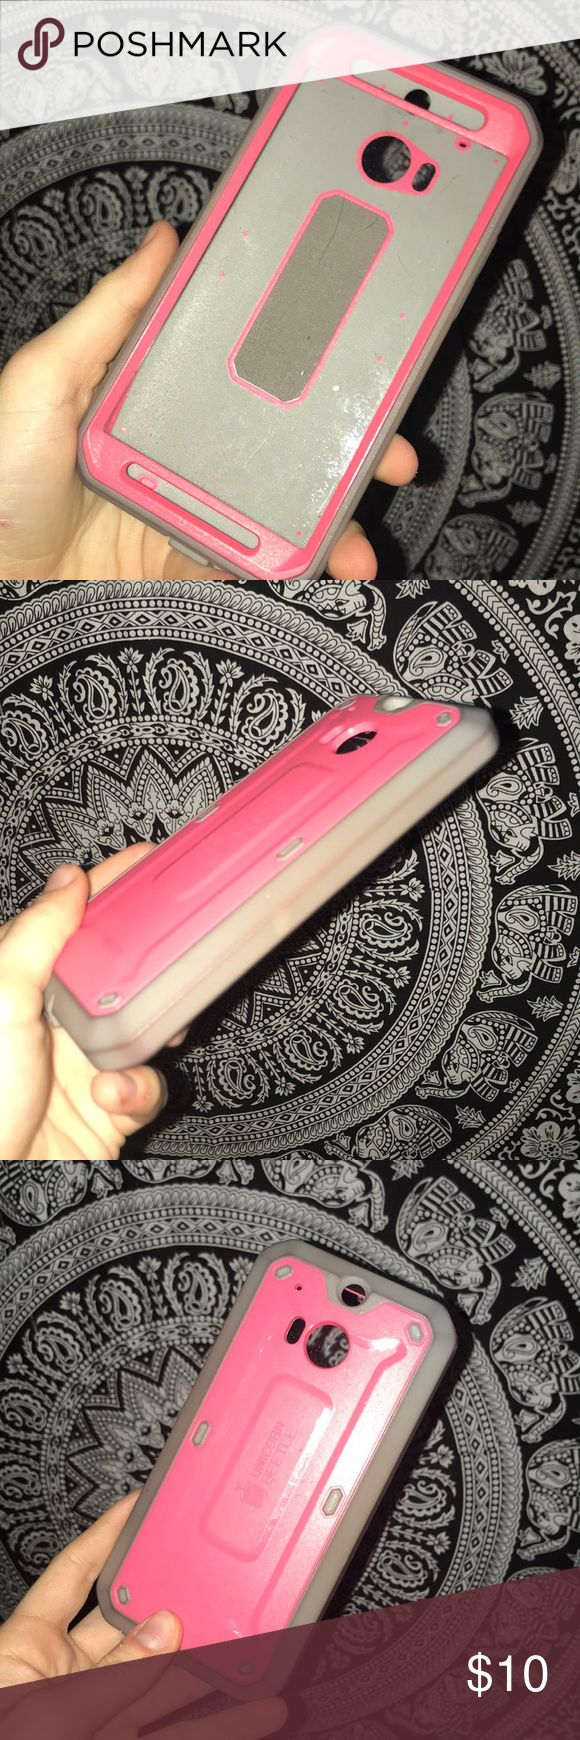 HTC phone case Pink and grey HTC case  Lightly used unicorn beetle Accessories Phone Cases